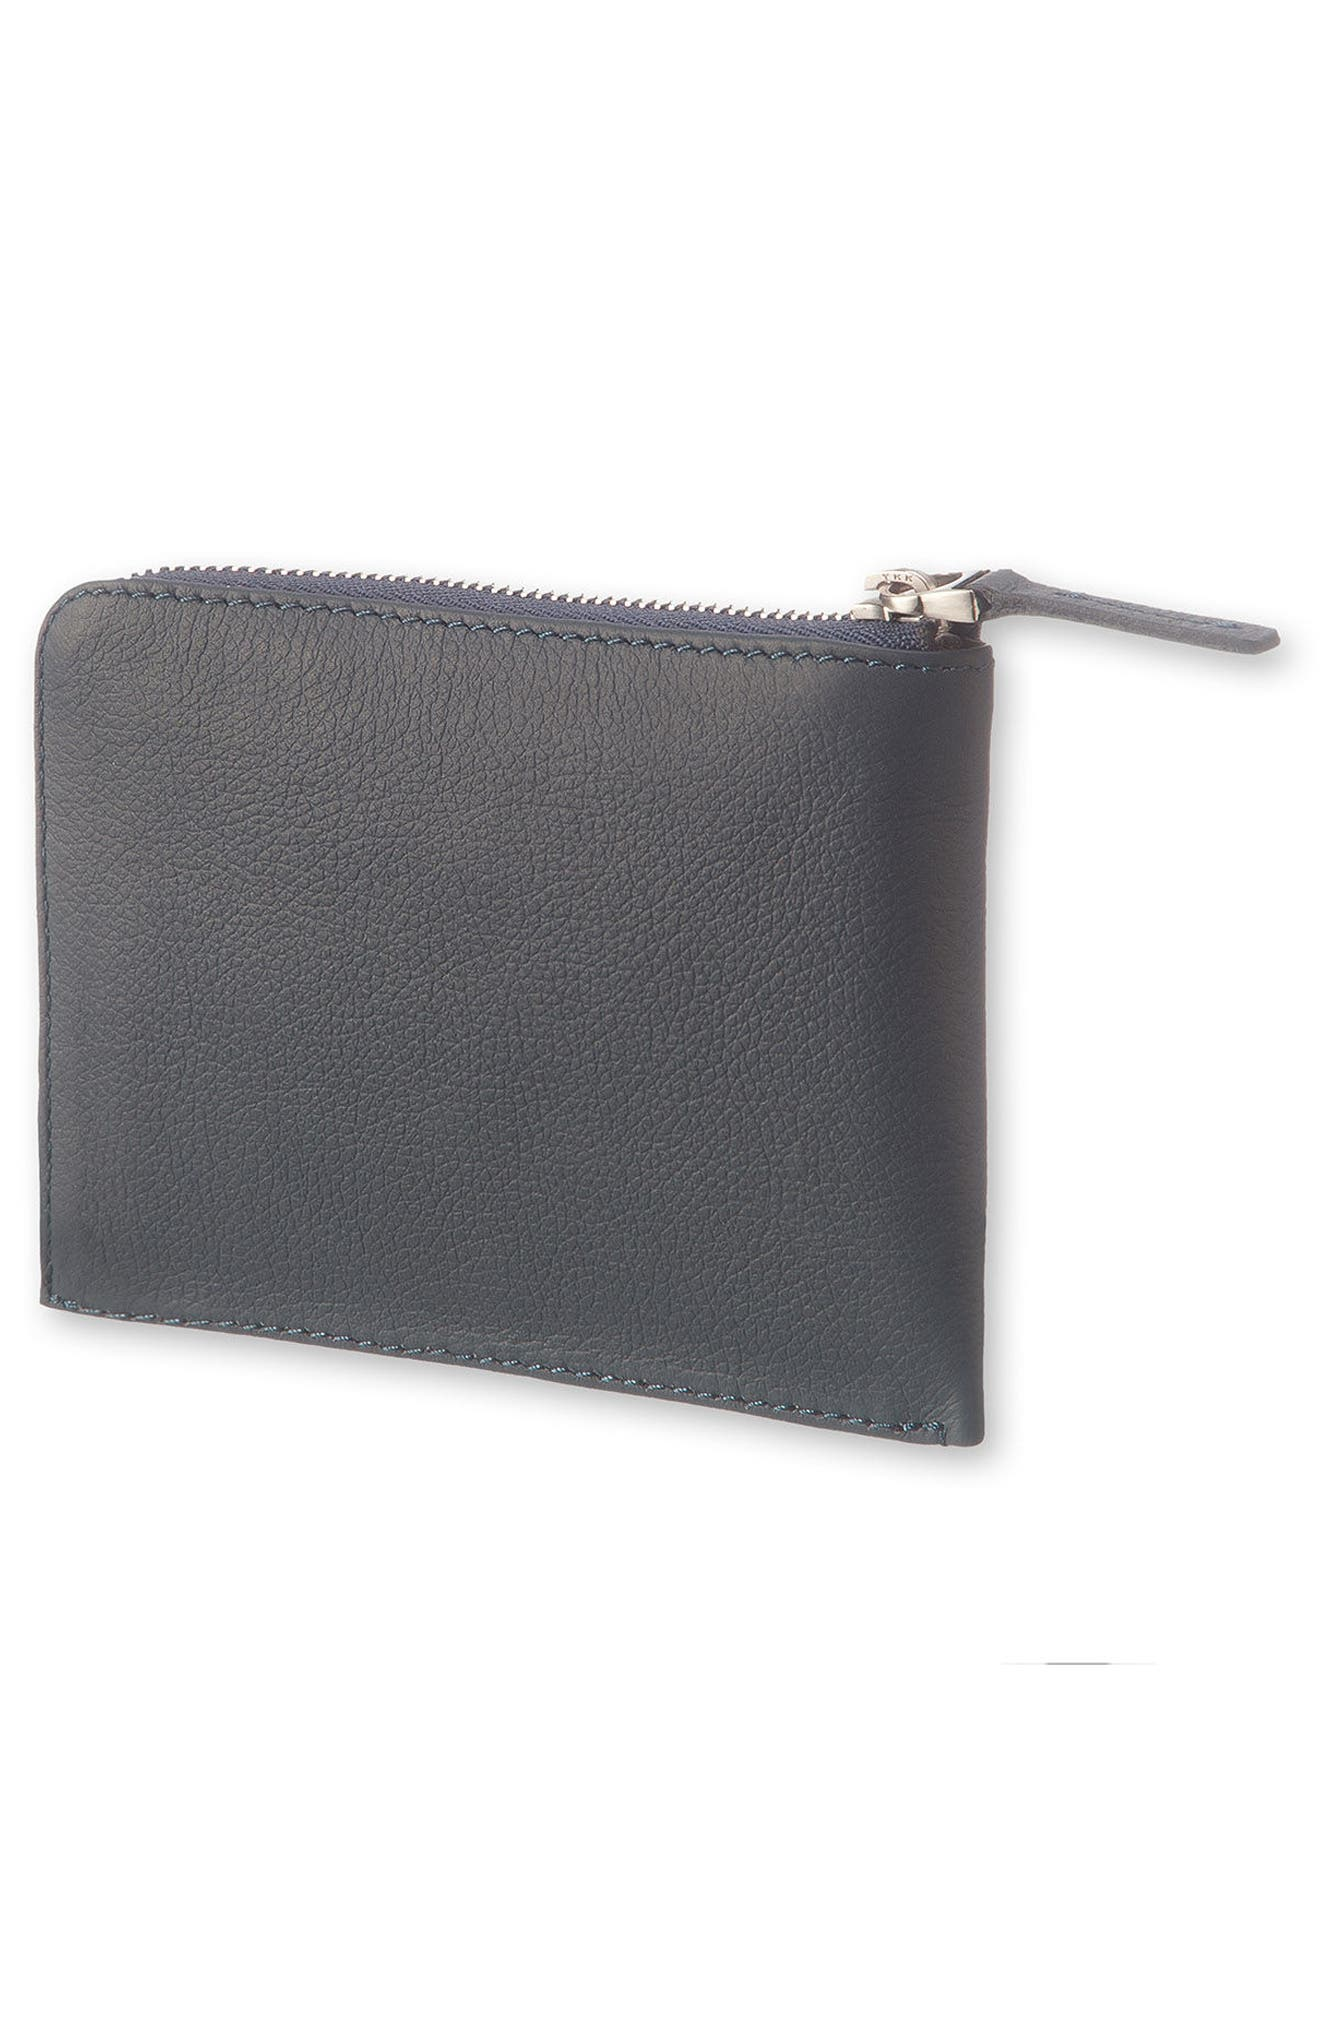 Alternate Image 4  - Moleskine Lineage Leather Zip Wallet